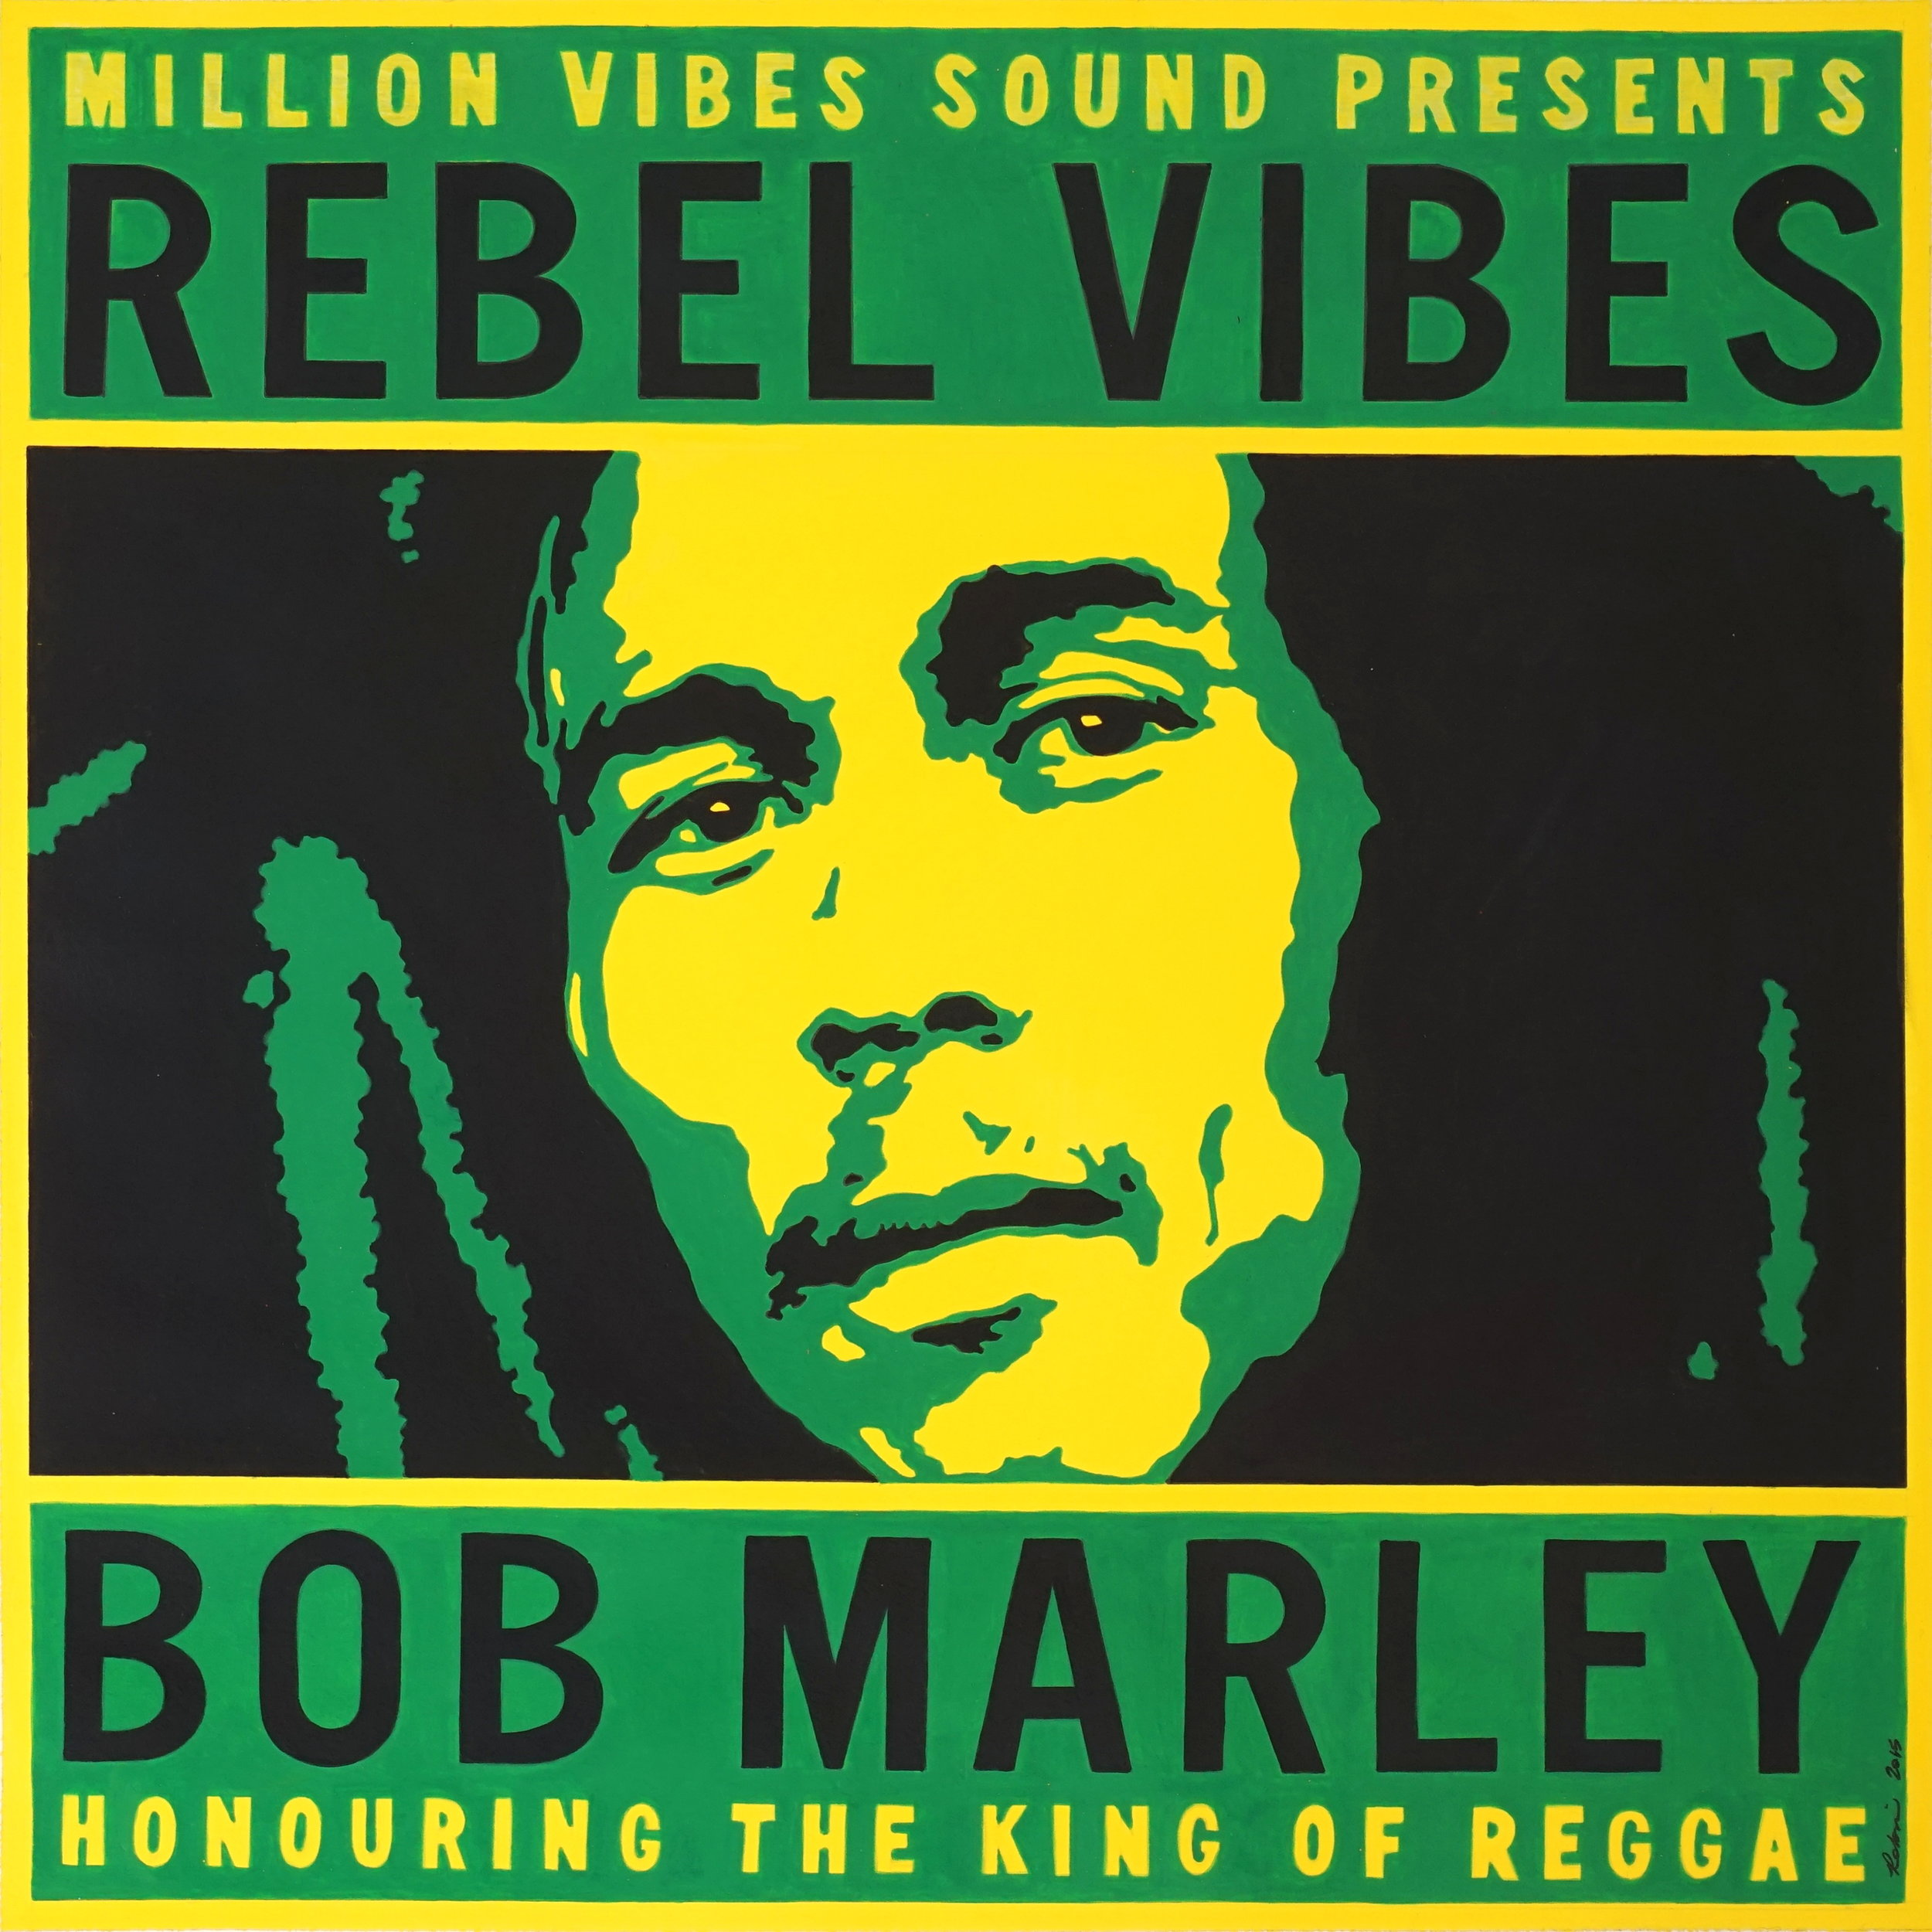 Million Vibes Sound - Rebel Vibes (mixtape)